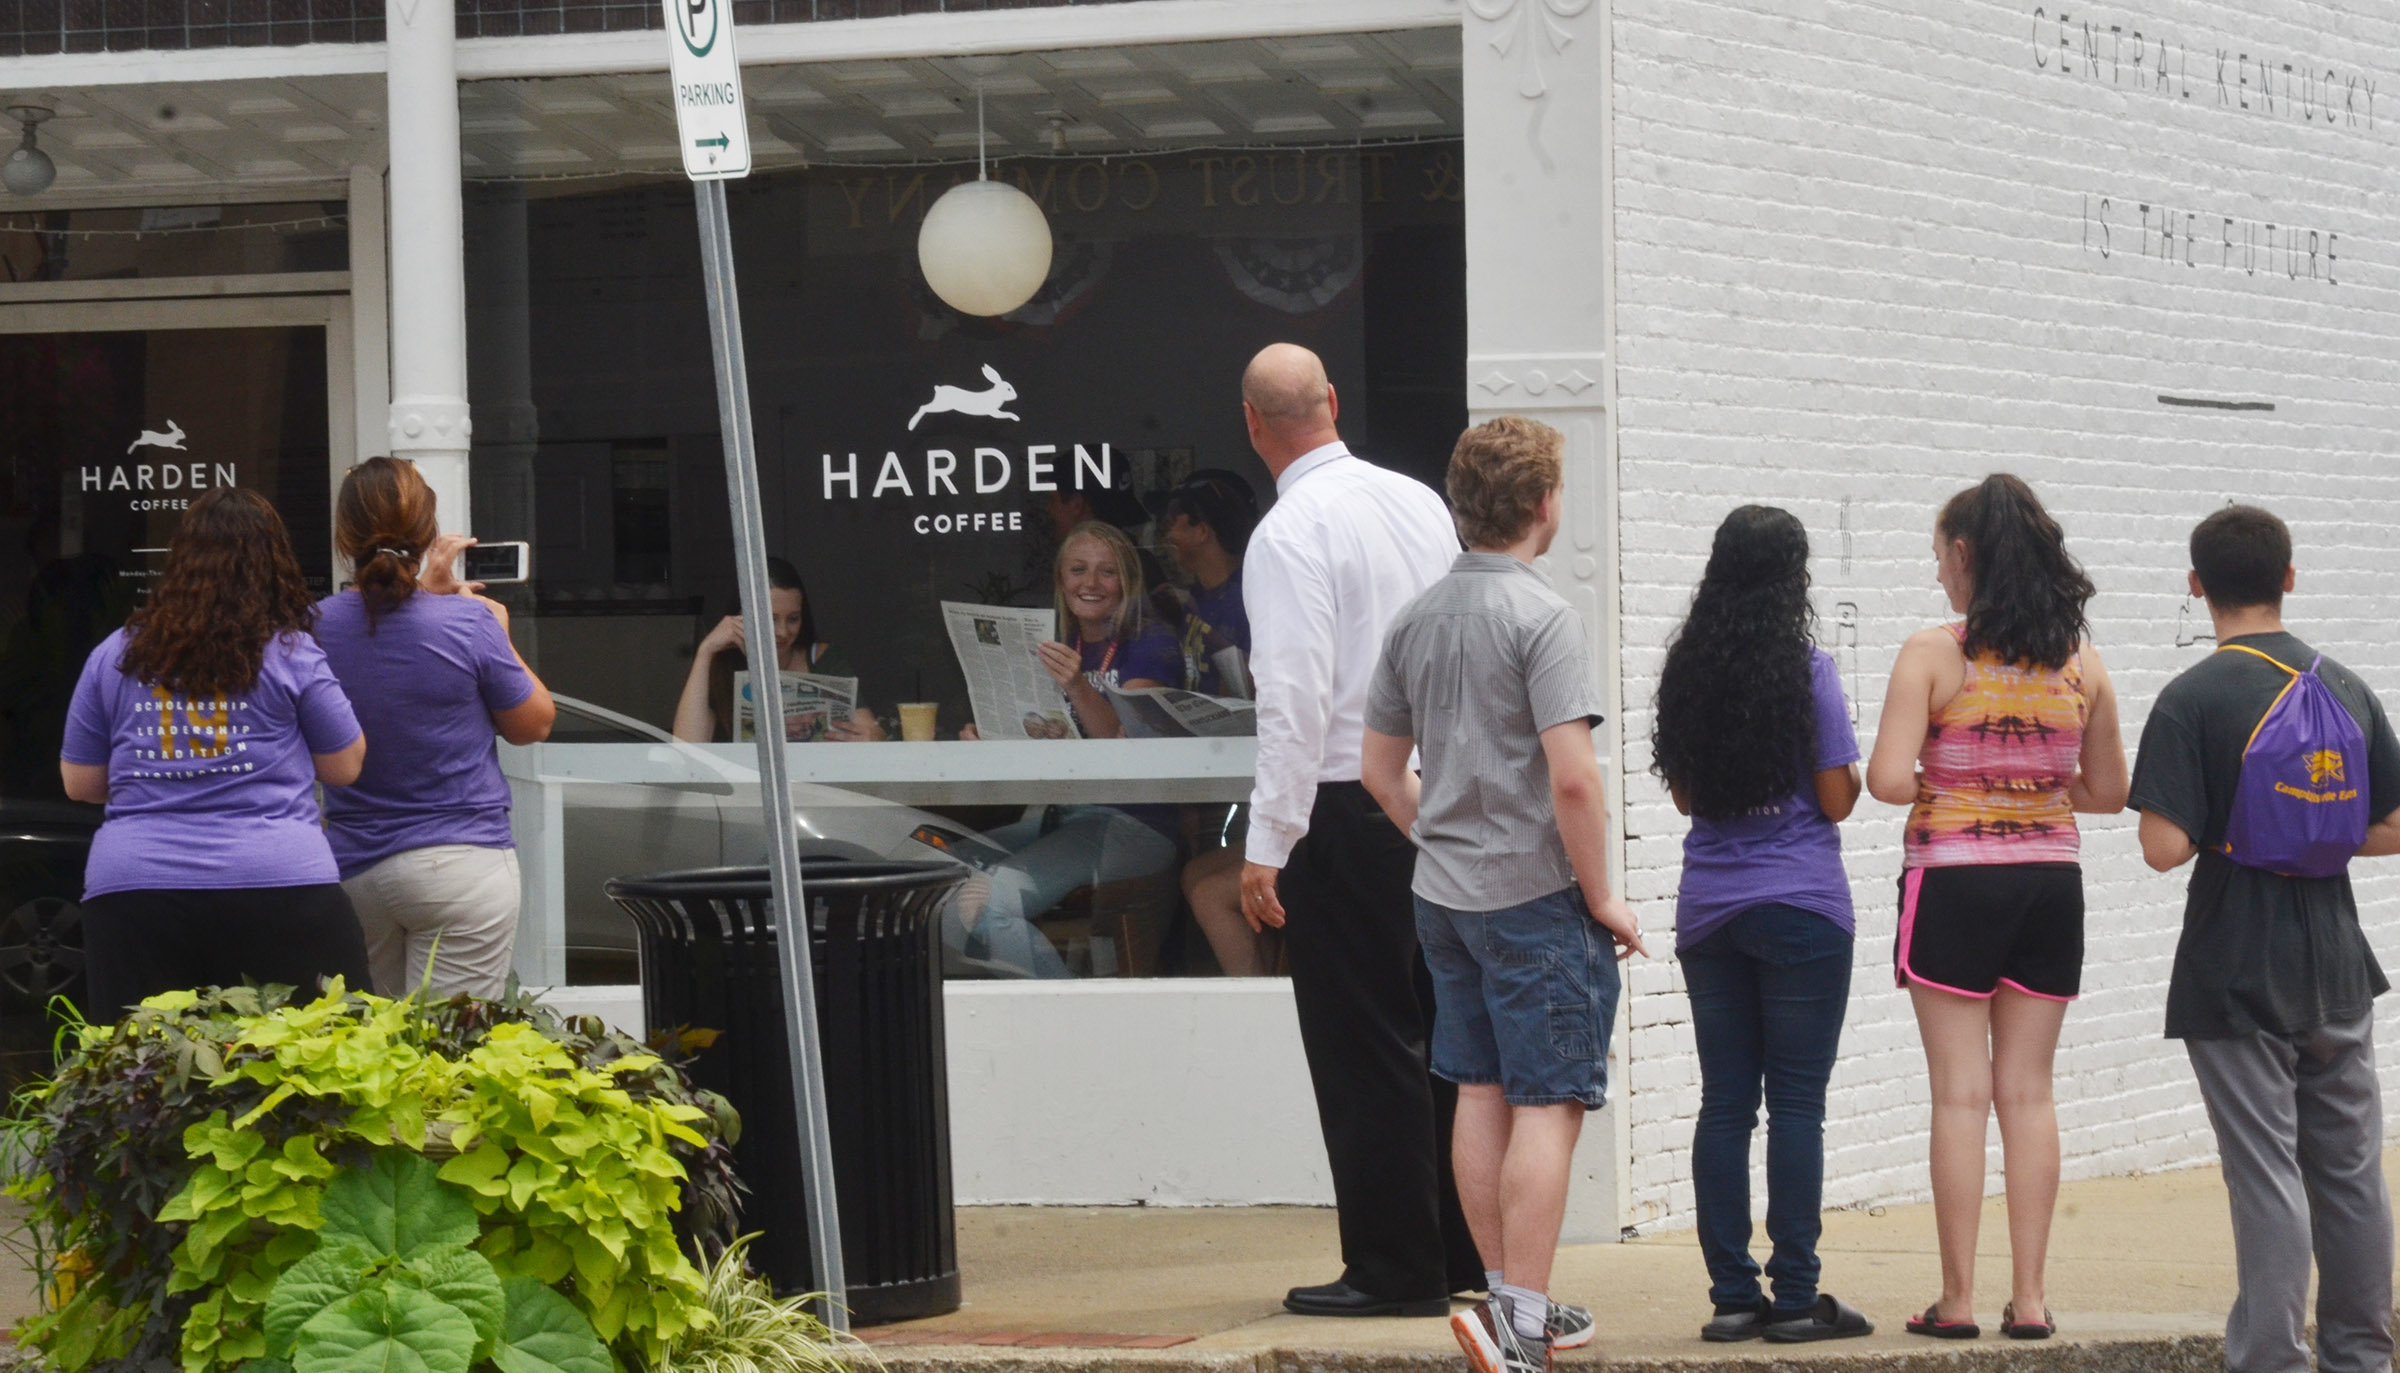 CHS students take a photo of themselves enjoying coffee at Harden Coffee.